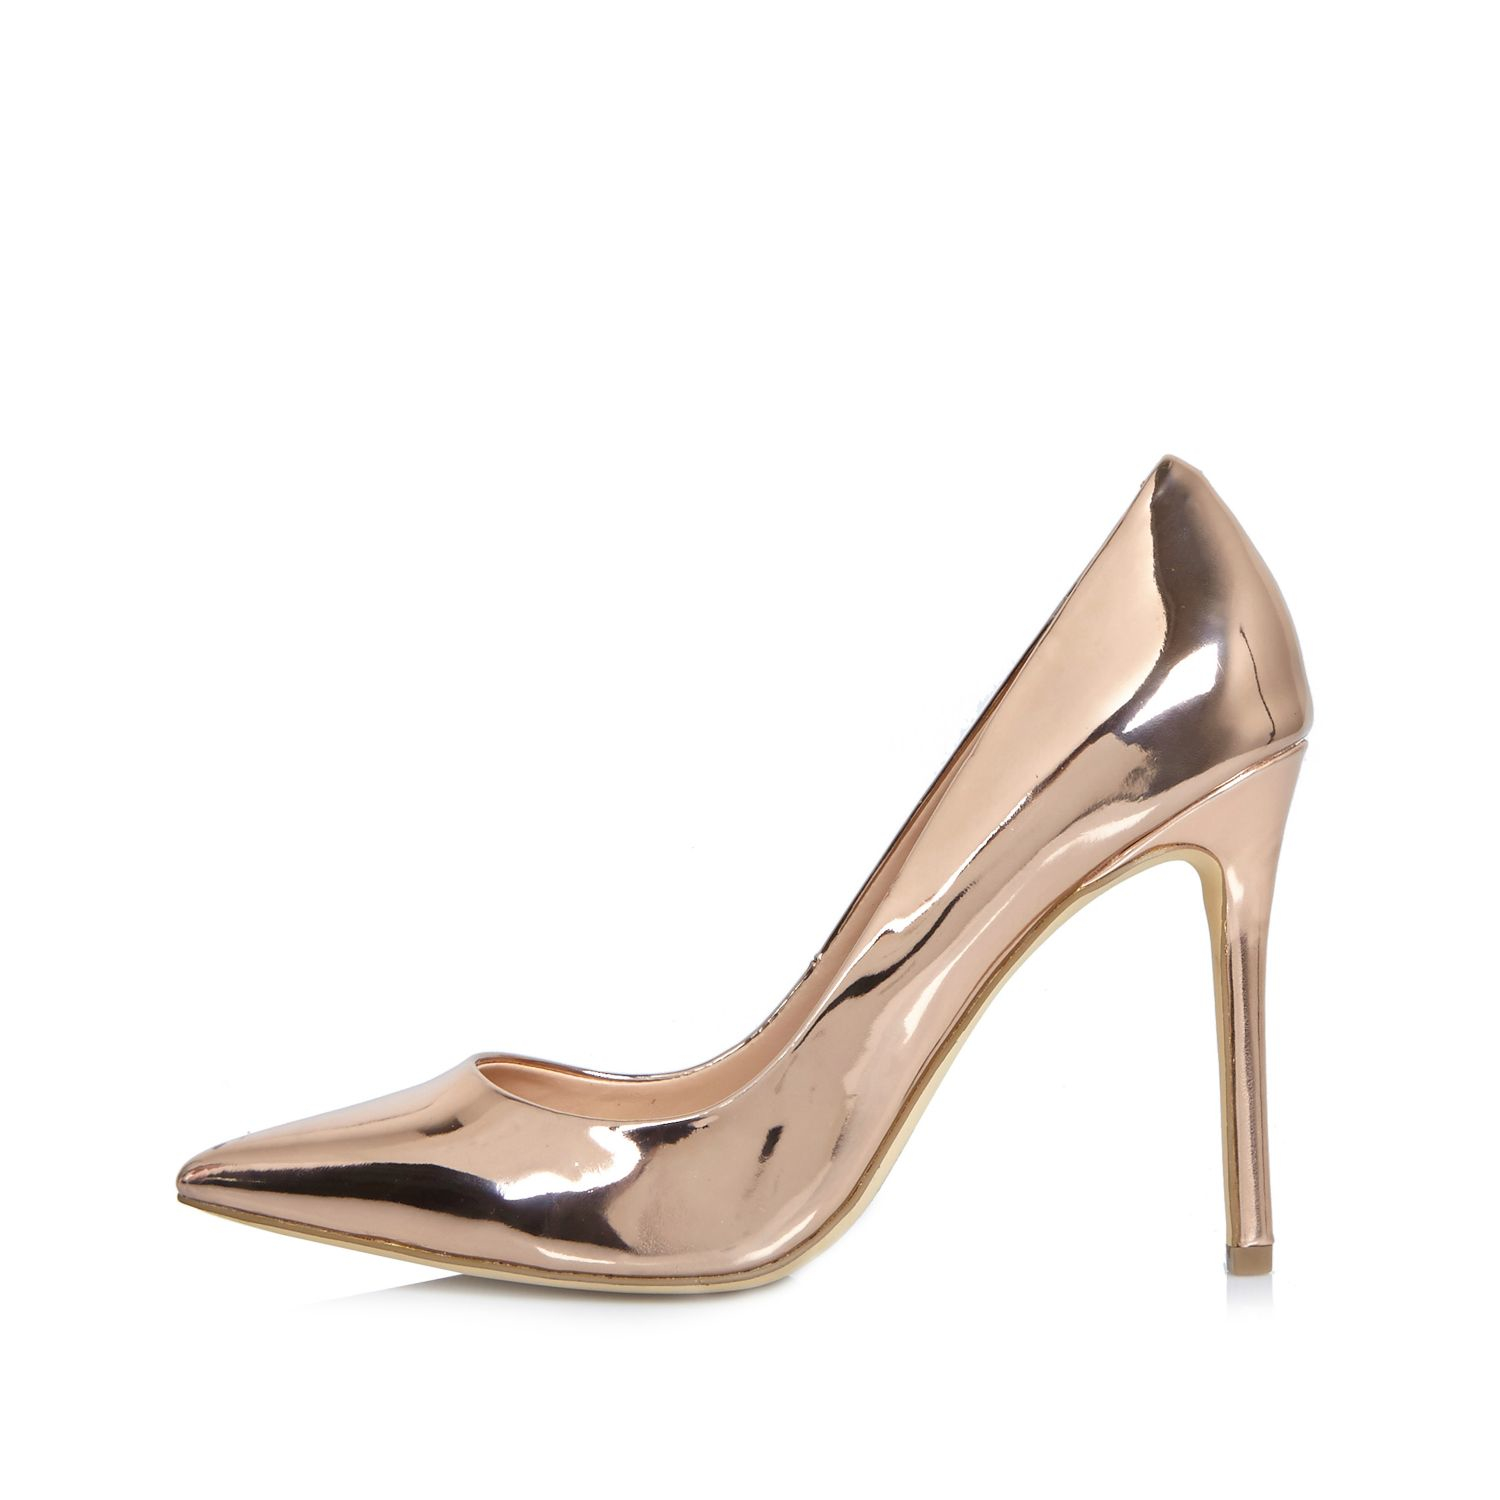 Dkny High Heel Shoes